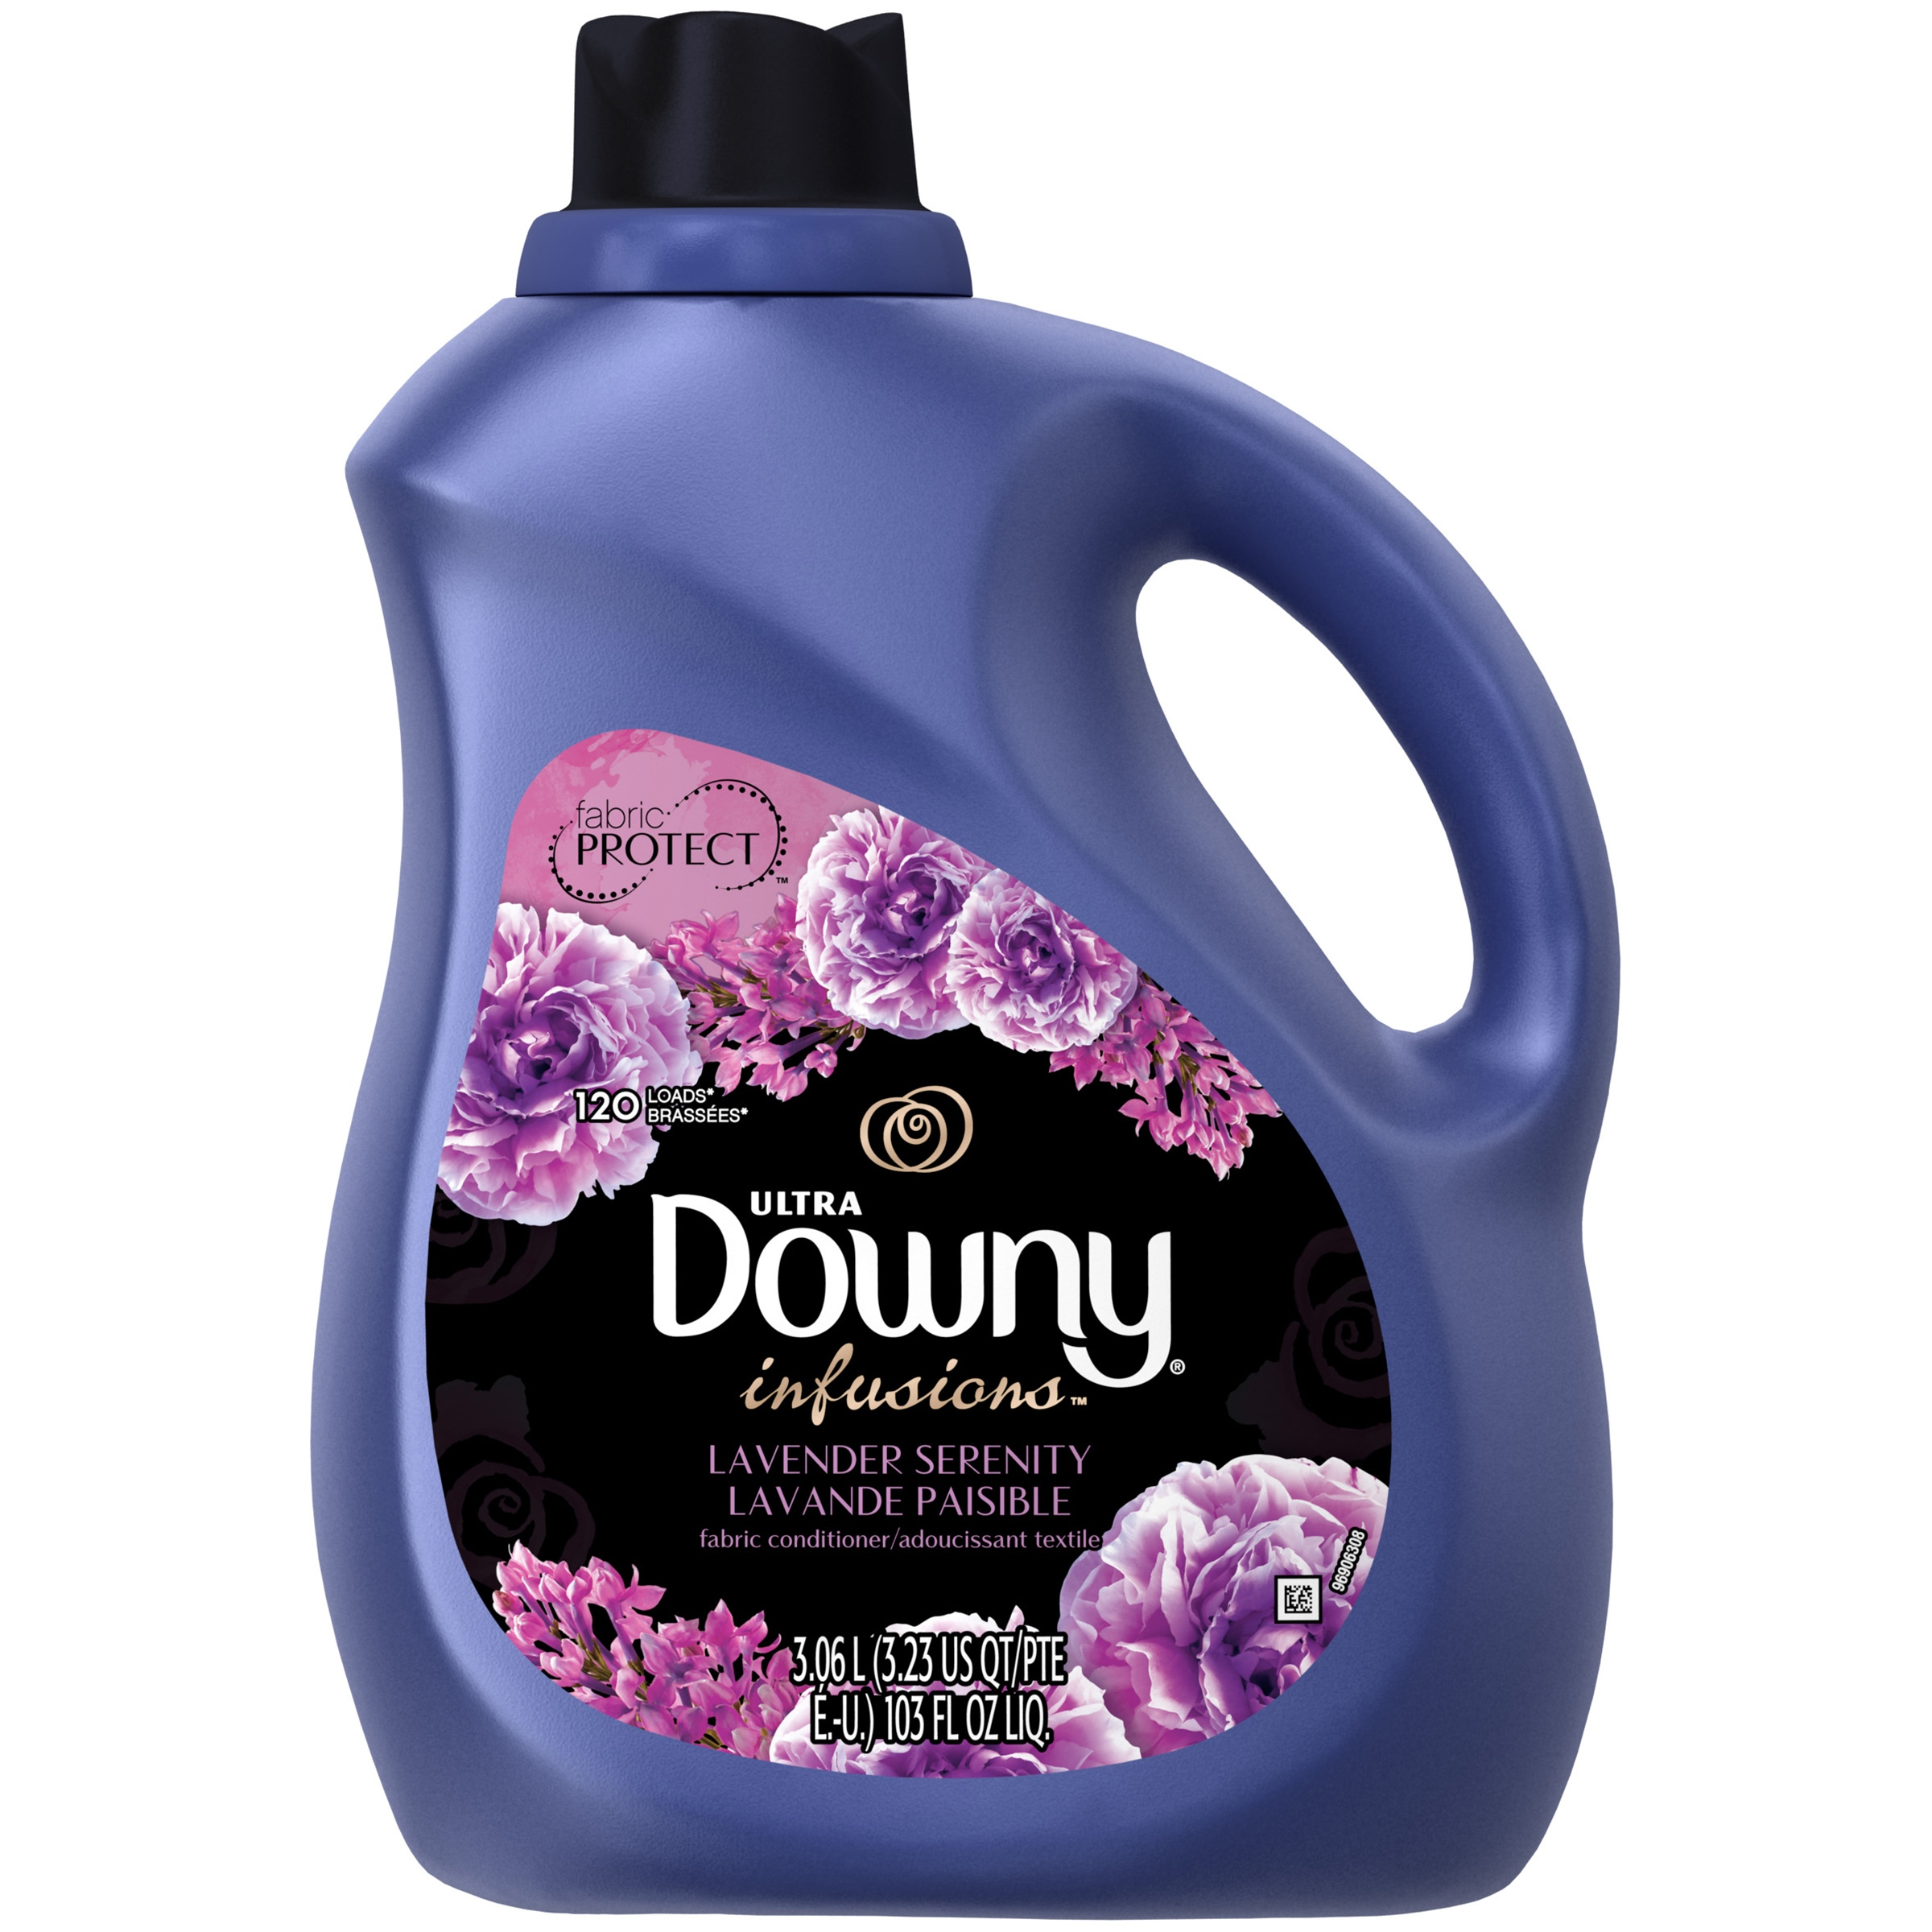 Downy Infusions Lavender Serenity Liquid Fabric Conditioner (Fabric Softener), 120 Loads 103 fl oz